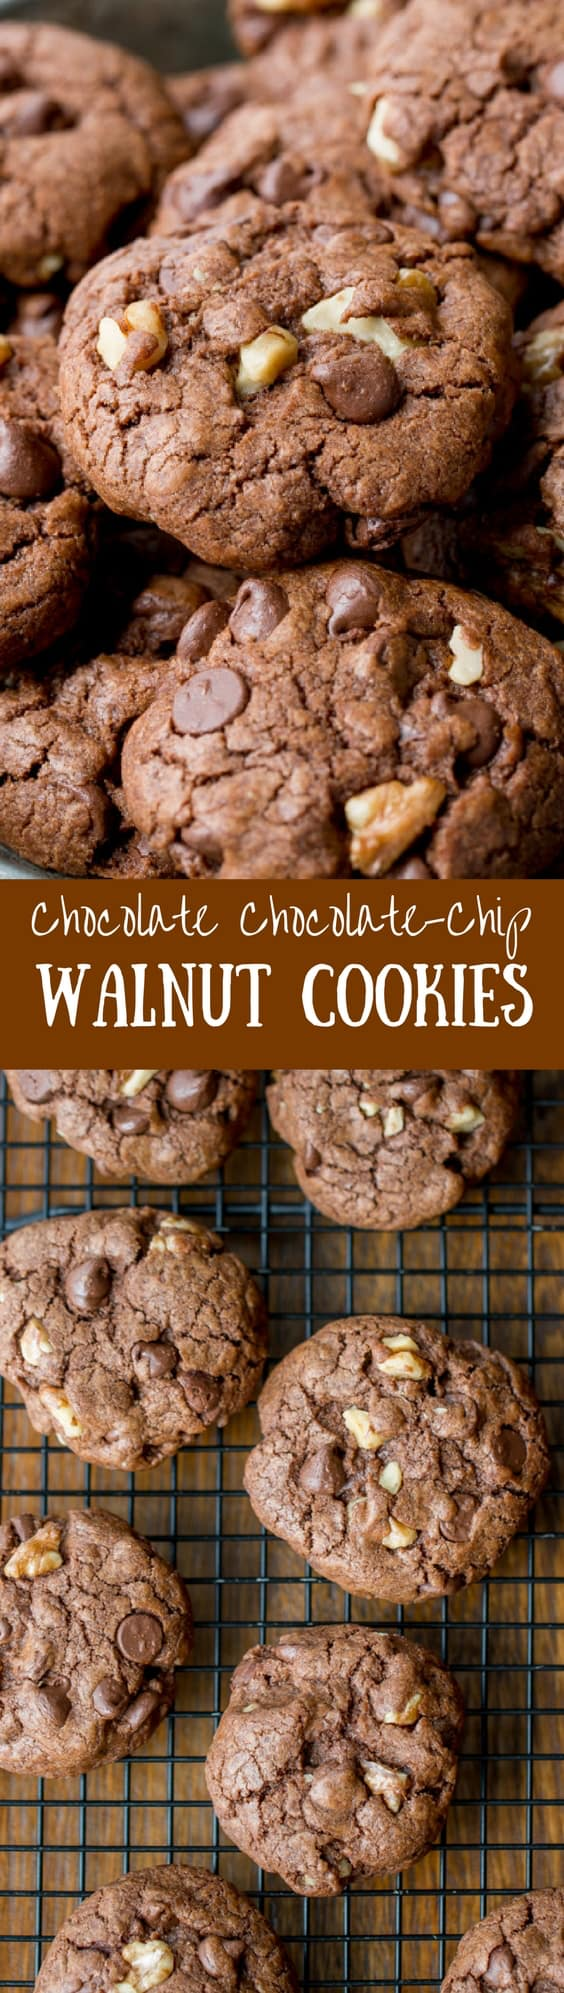 Chocolate Chocolate-Chip Walnut Cookies - Saving Room for Dessert